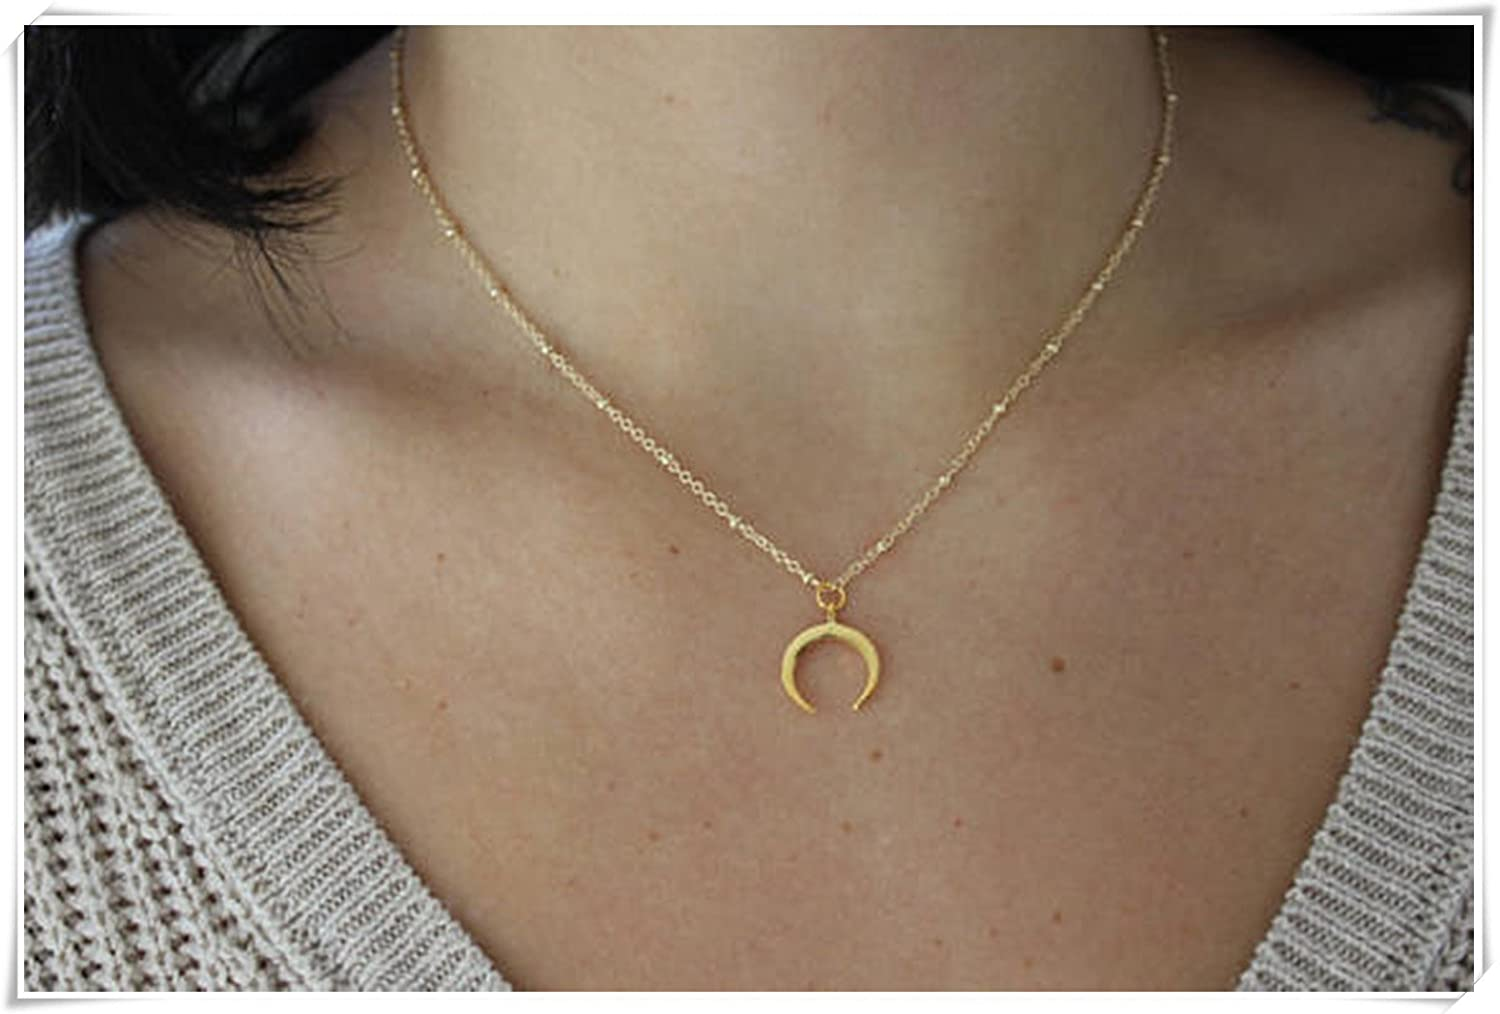 Satellite Chain Necklace, Horn Necklace, Crescent Moon Necklace, Dainty Jewelry Moon Necklace. Elf small House